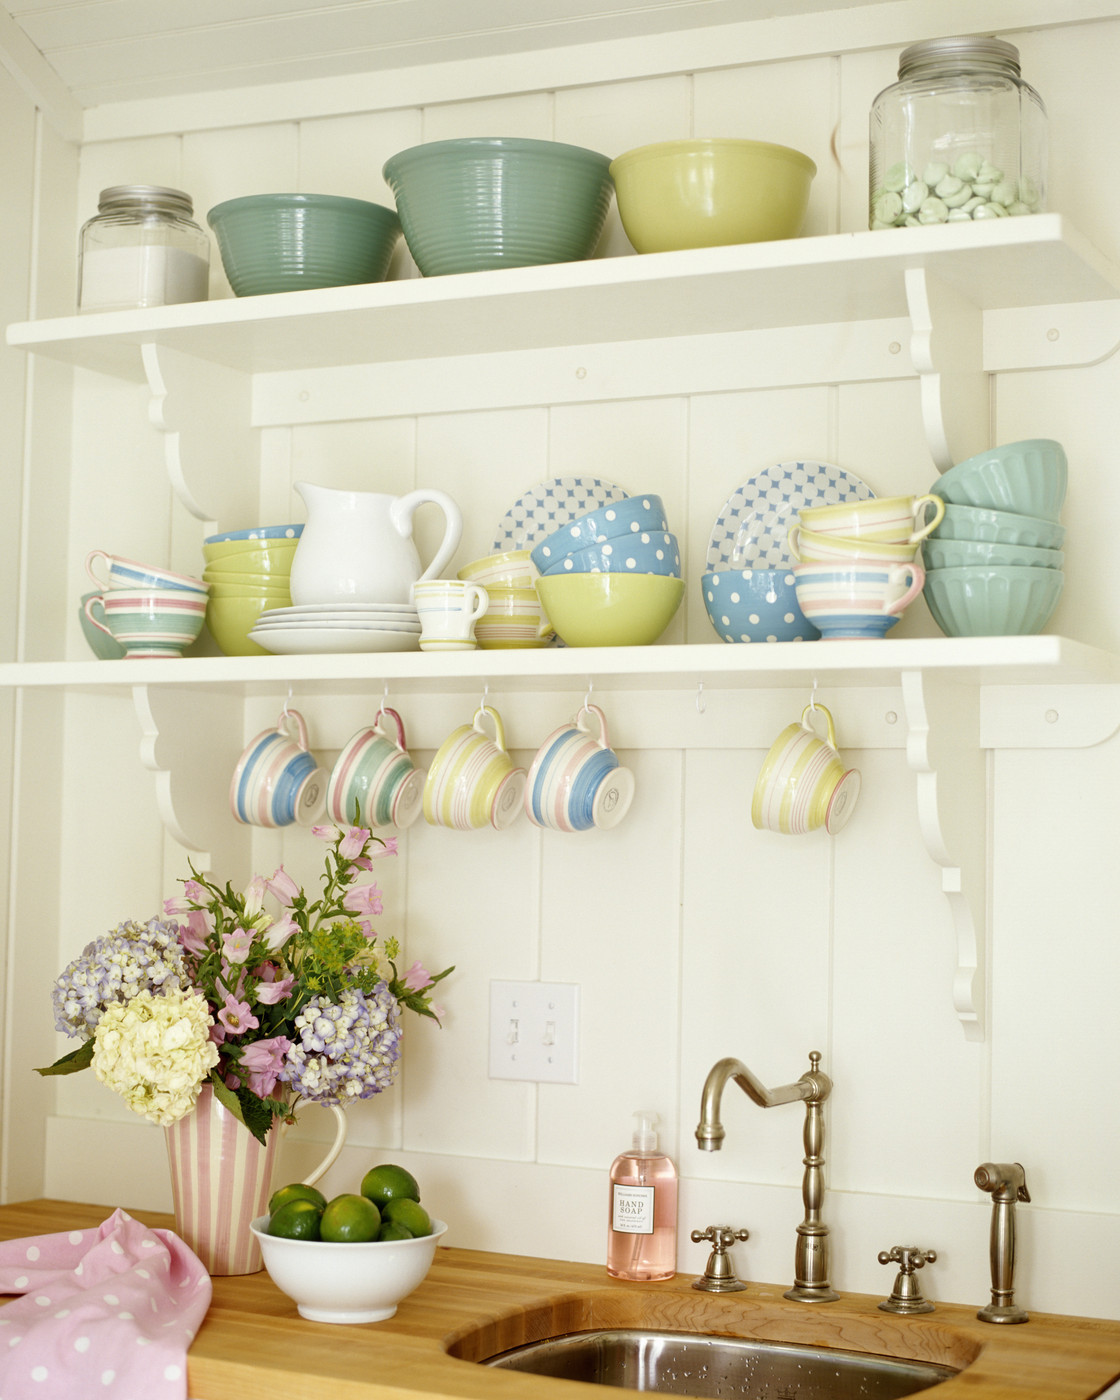 Open Shelving In The Kitchen: Beadboard Backsplash Photos, Design, Ideas, Remodel, And